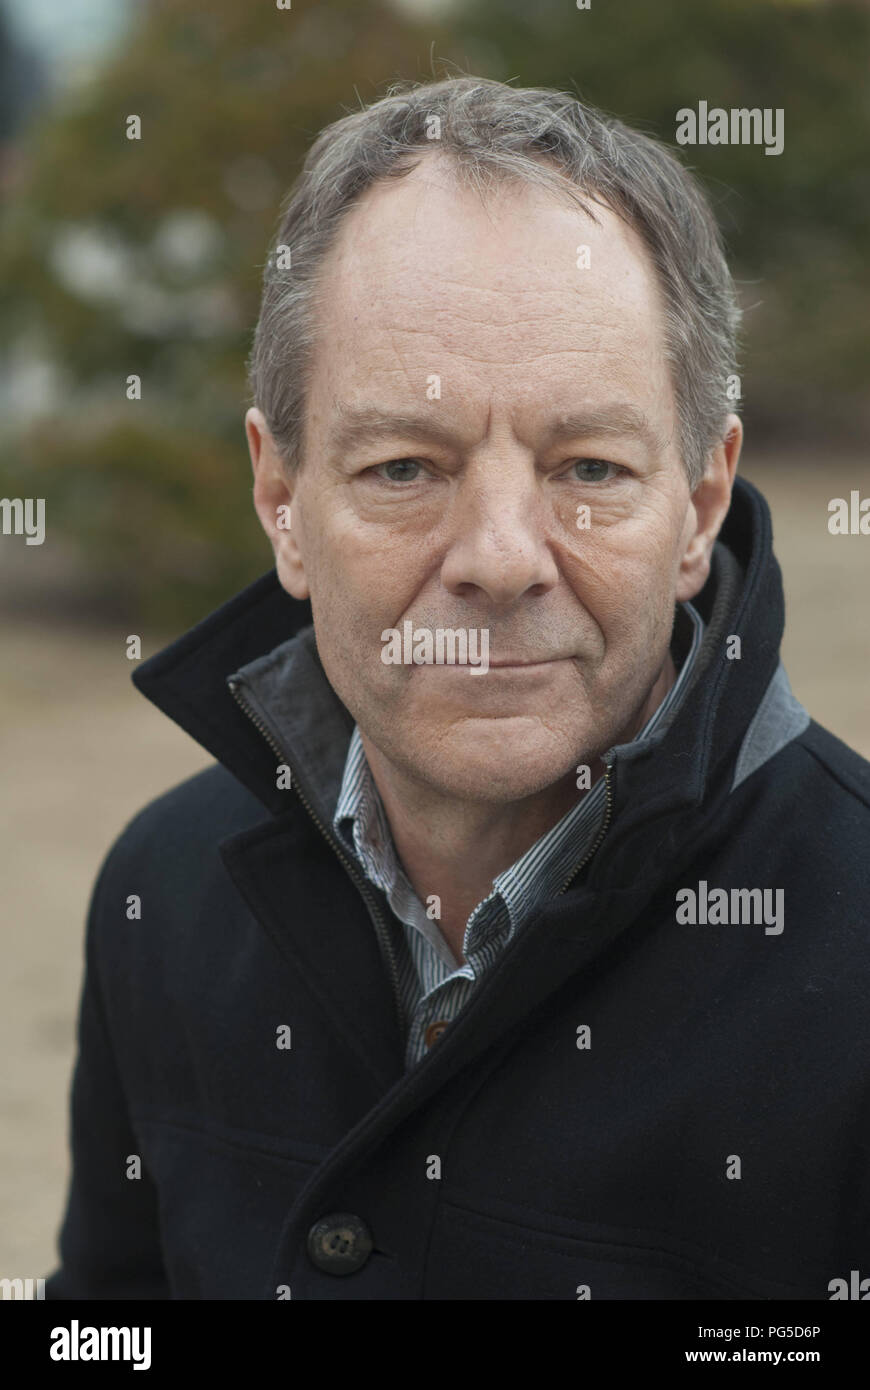 Leipzig, DEU, 13.03.2015: Portrait Tom Drury  (USA) , writer and author. Born in 1956 in Iowa, he counts among the most successful American writers. - Stock Image